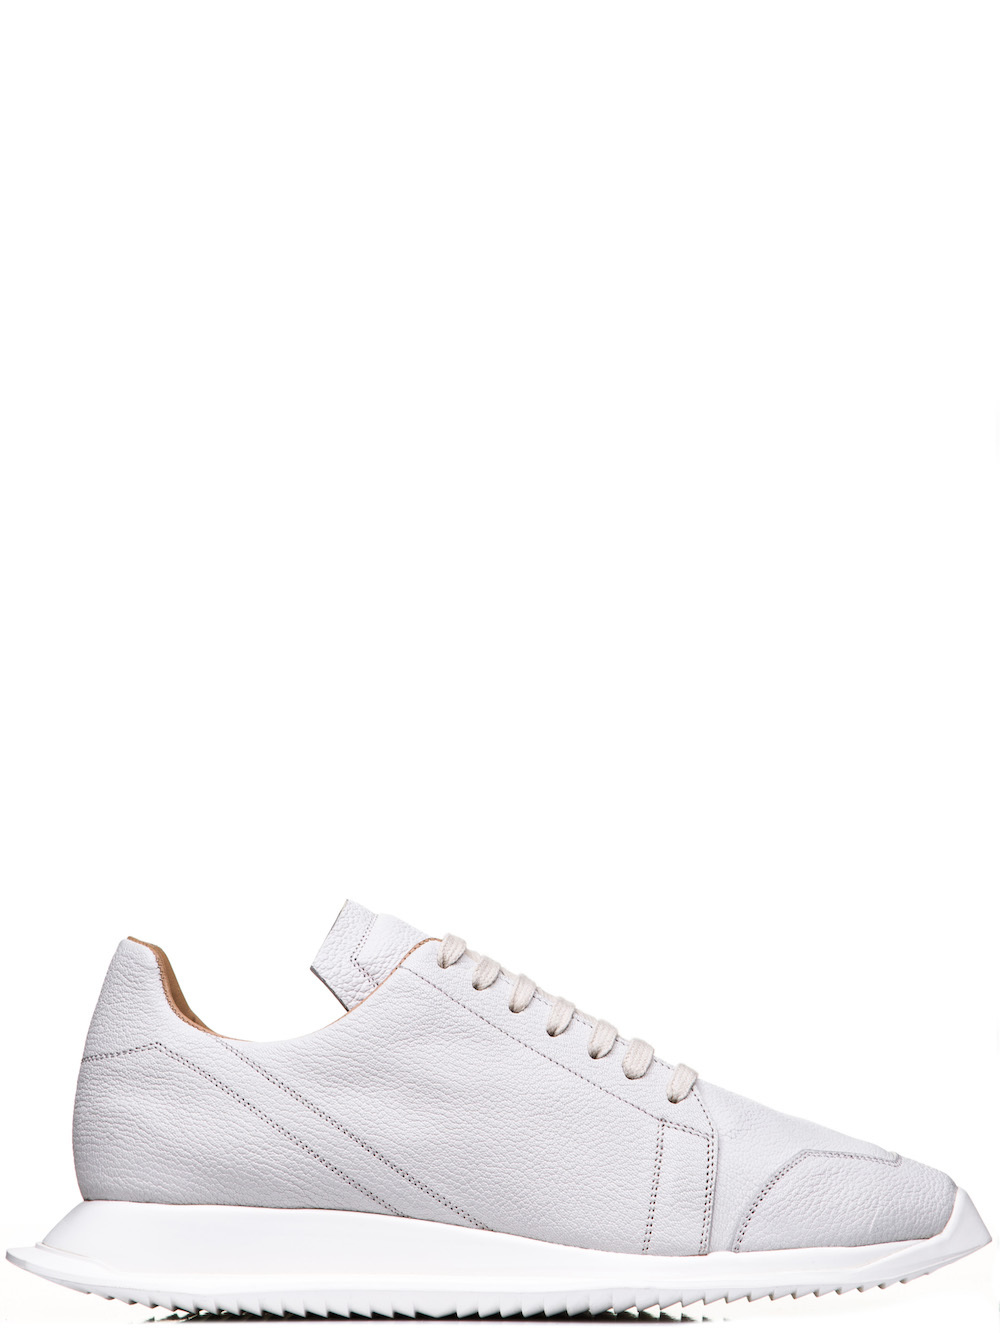 RICK OWENS OBLIQUE LACE-UP RUNNERS IN WHITE GOAT LEATHER